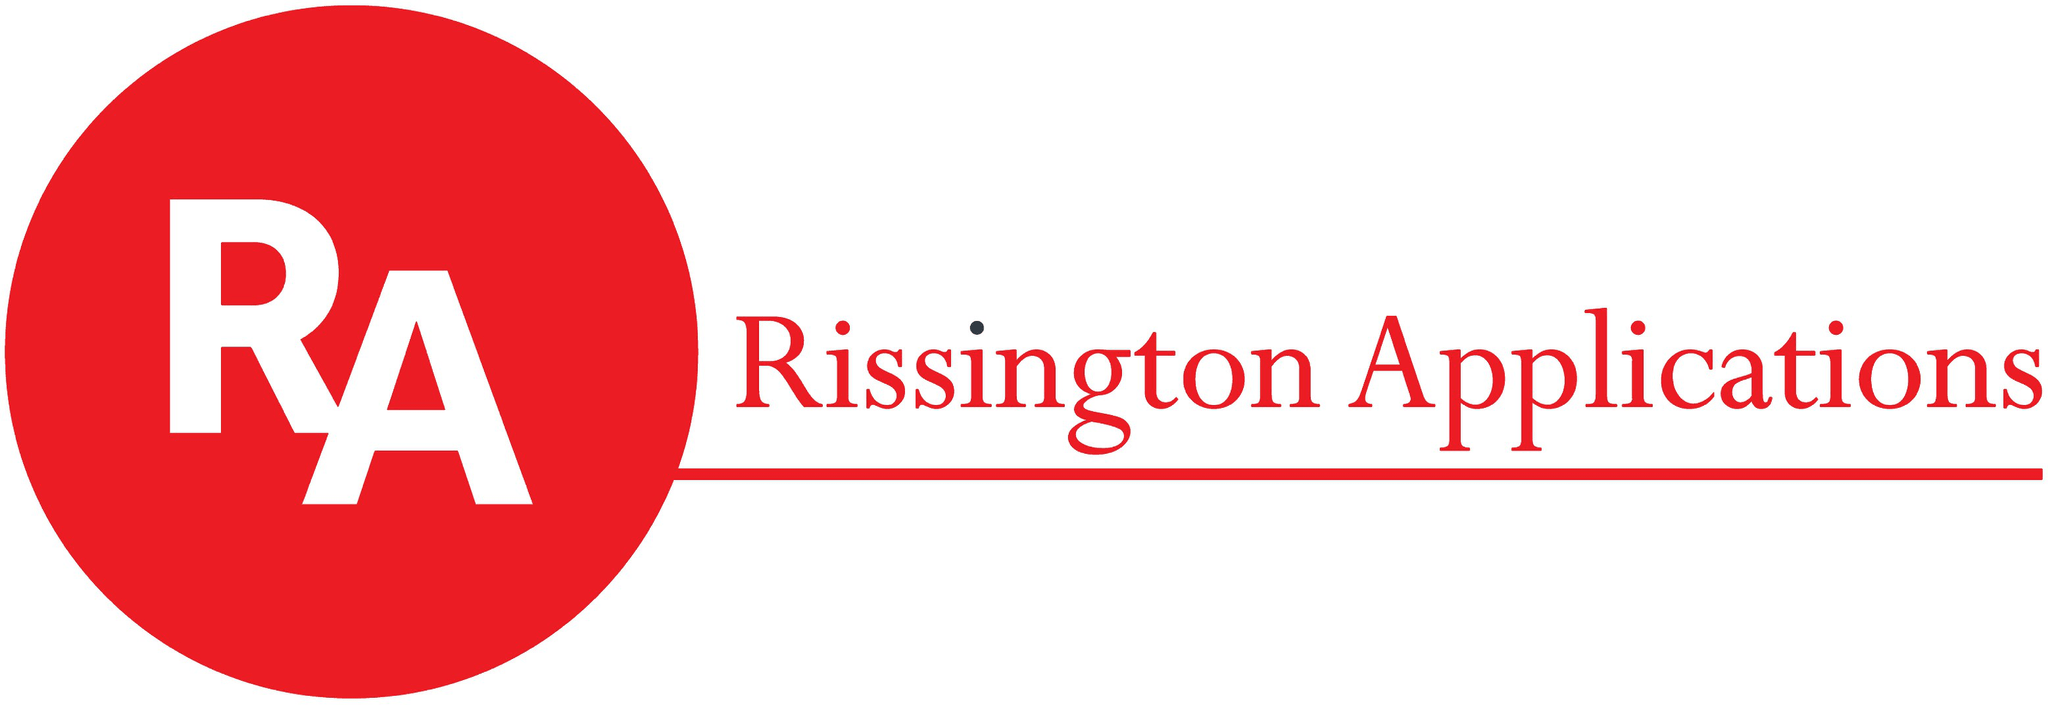 Rissington Applications